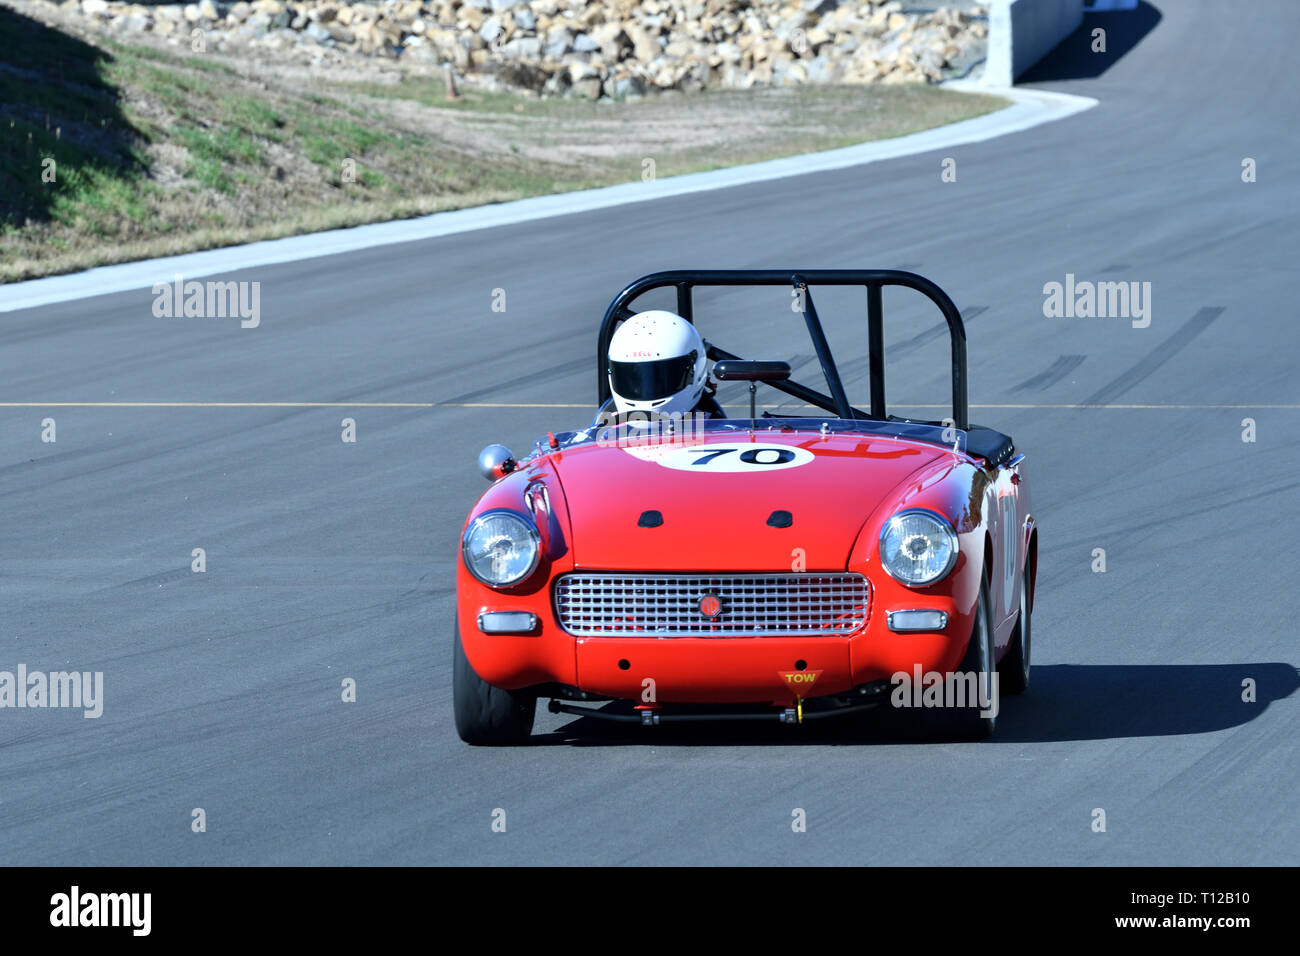 Red Racing Car MG At Marulan Race Track In NSW Australia. Only Car On Track Going Down The Straight. - Stock Image